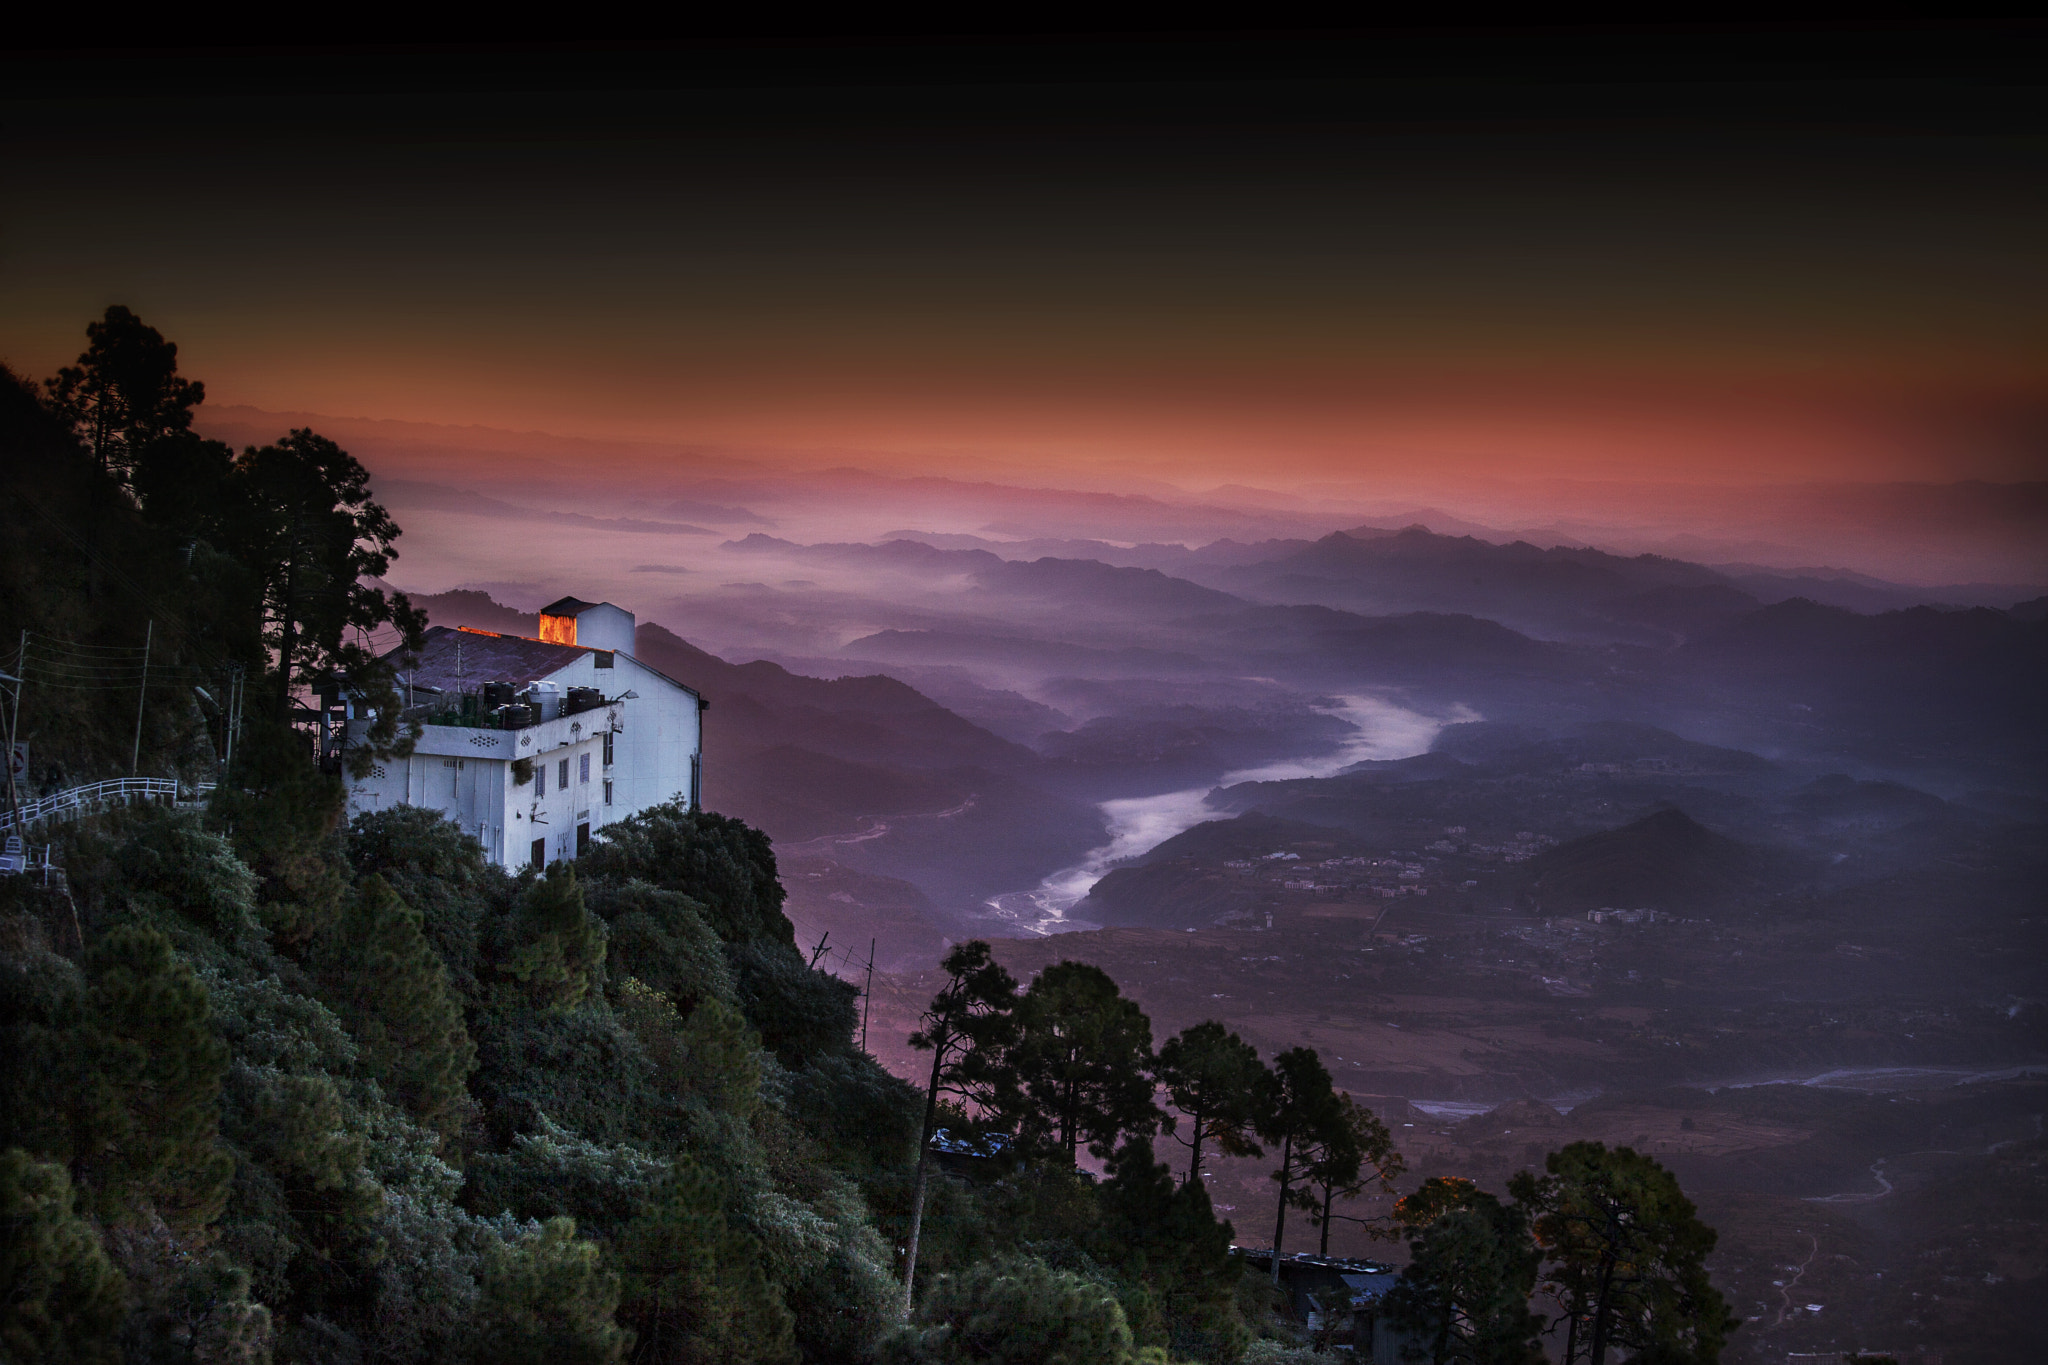 Photograph Sunset At Vaishno Devi by Siddharth Sharma on 500px